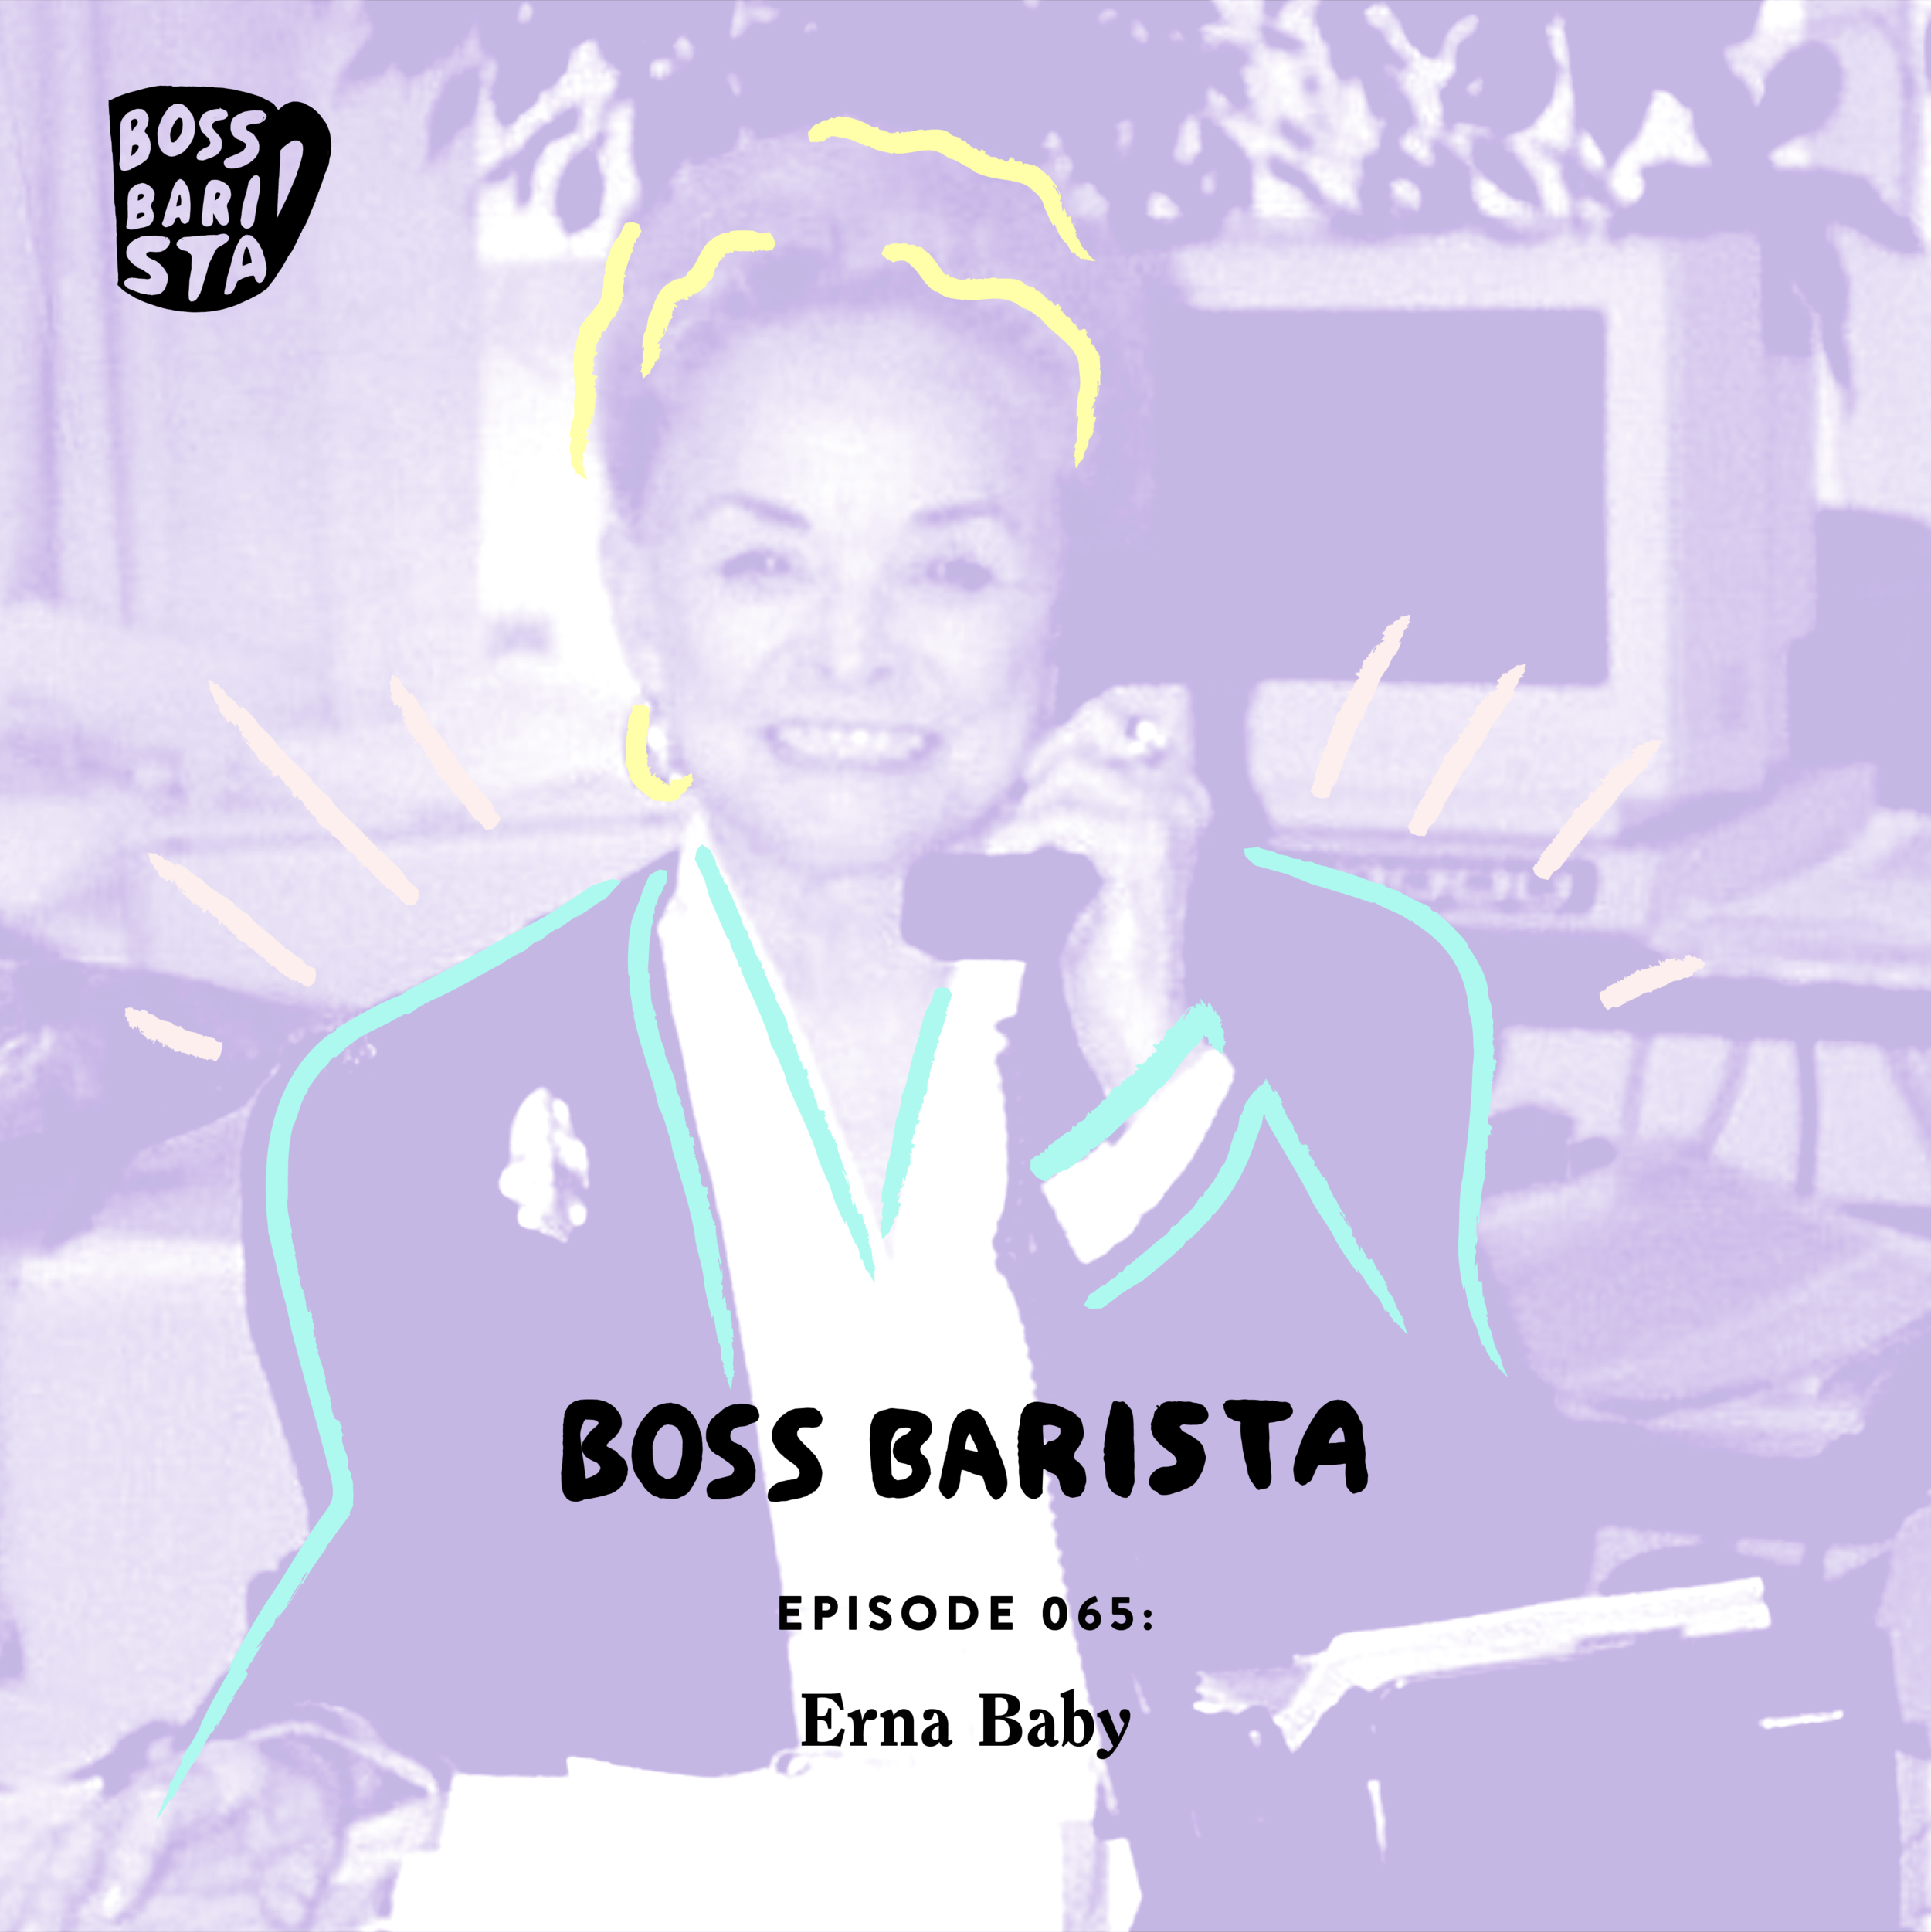 Boss_Barista_065_Cover_EPISODE_COVER.png